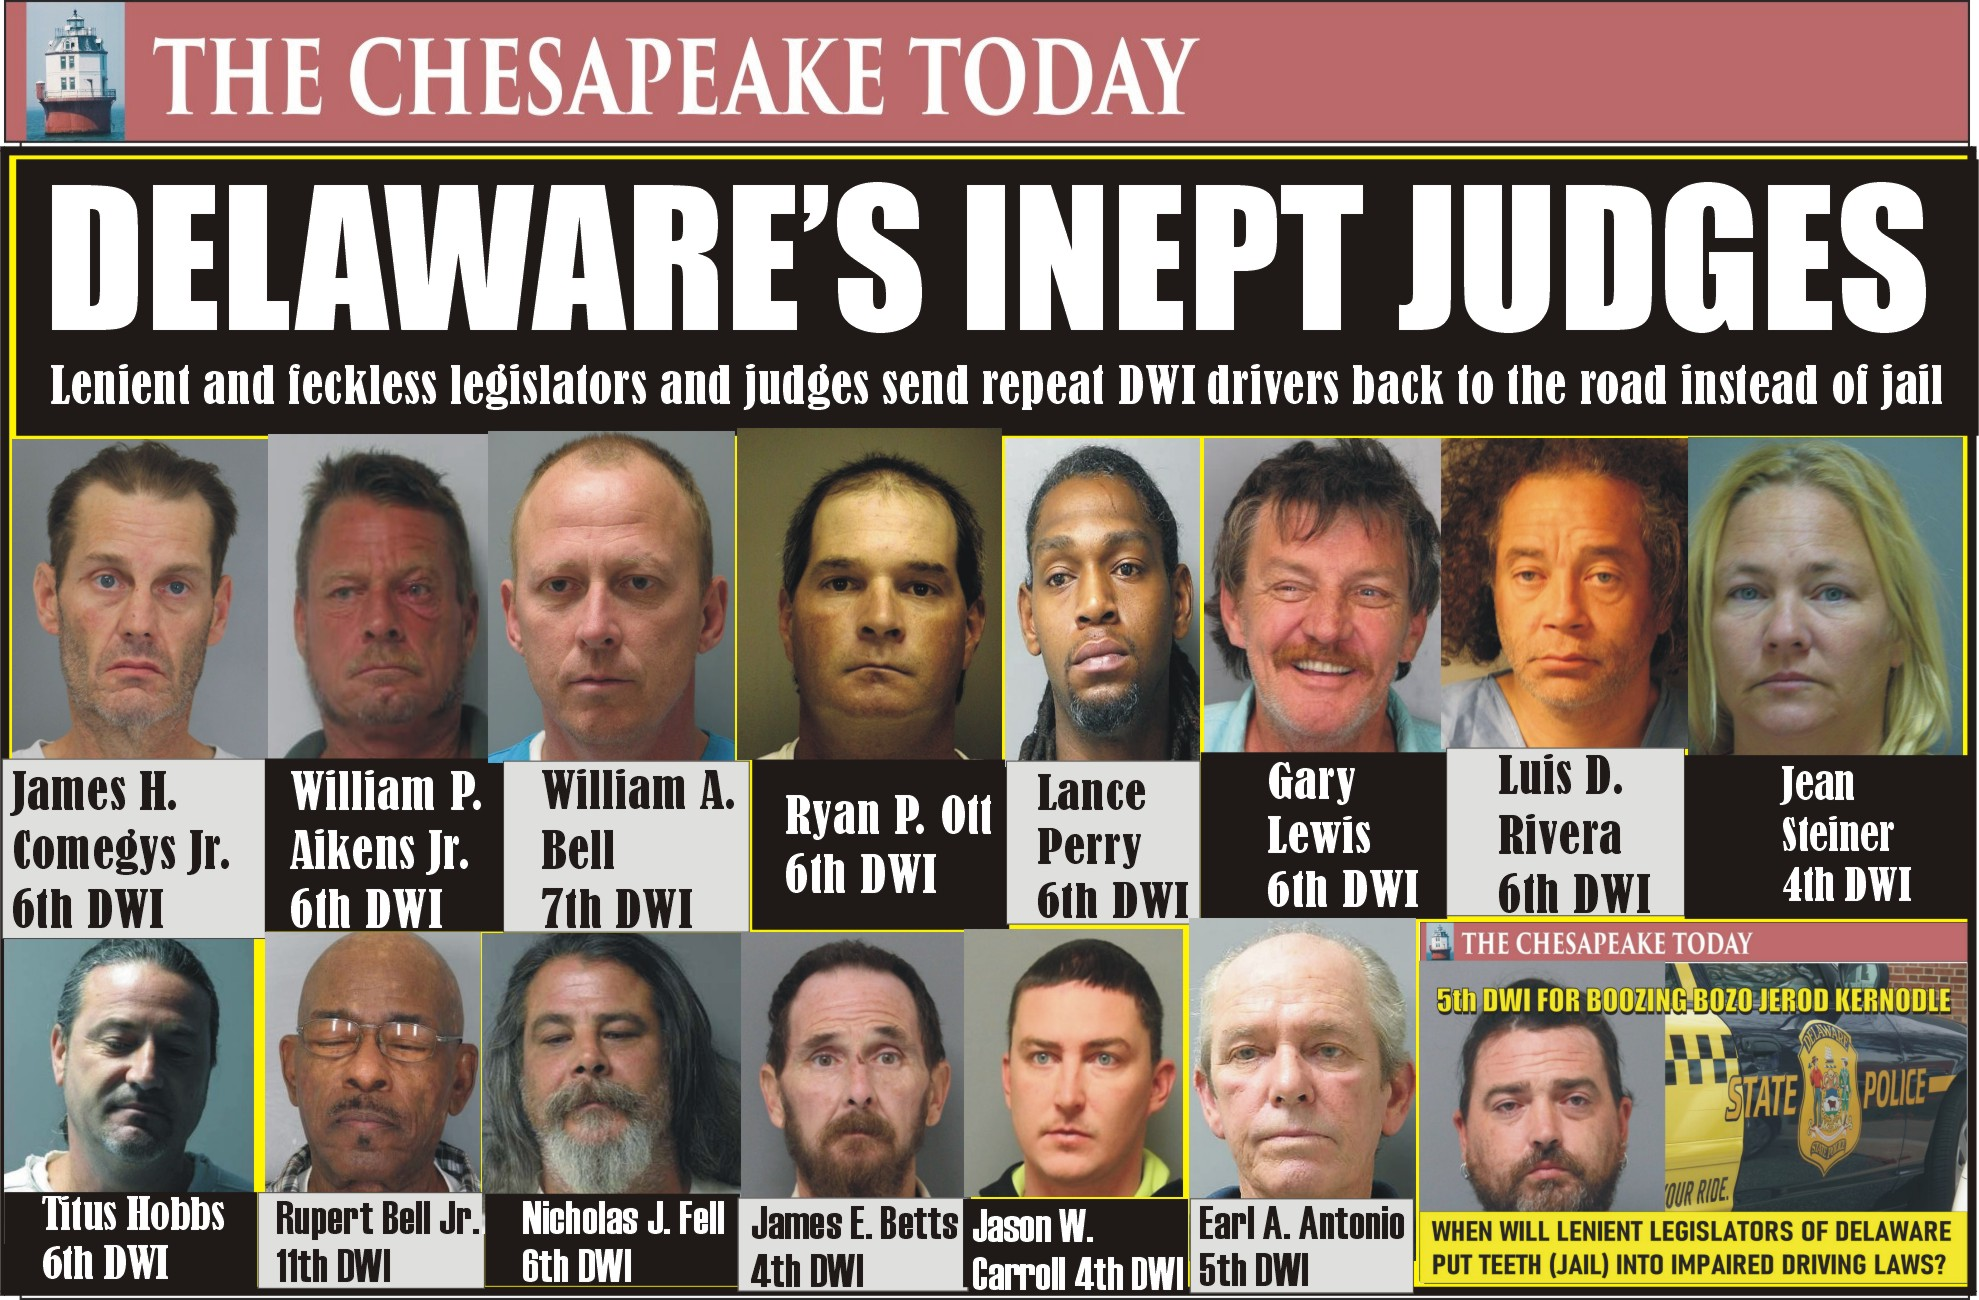 DELAWARE'S POLITICIANS ALLOW REPEAT DWI DRIVERS TO GO FREE…TO KILL YOU